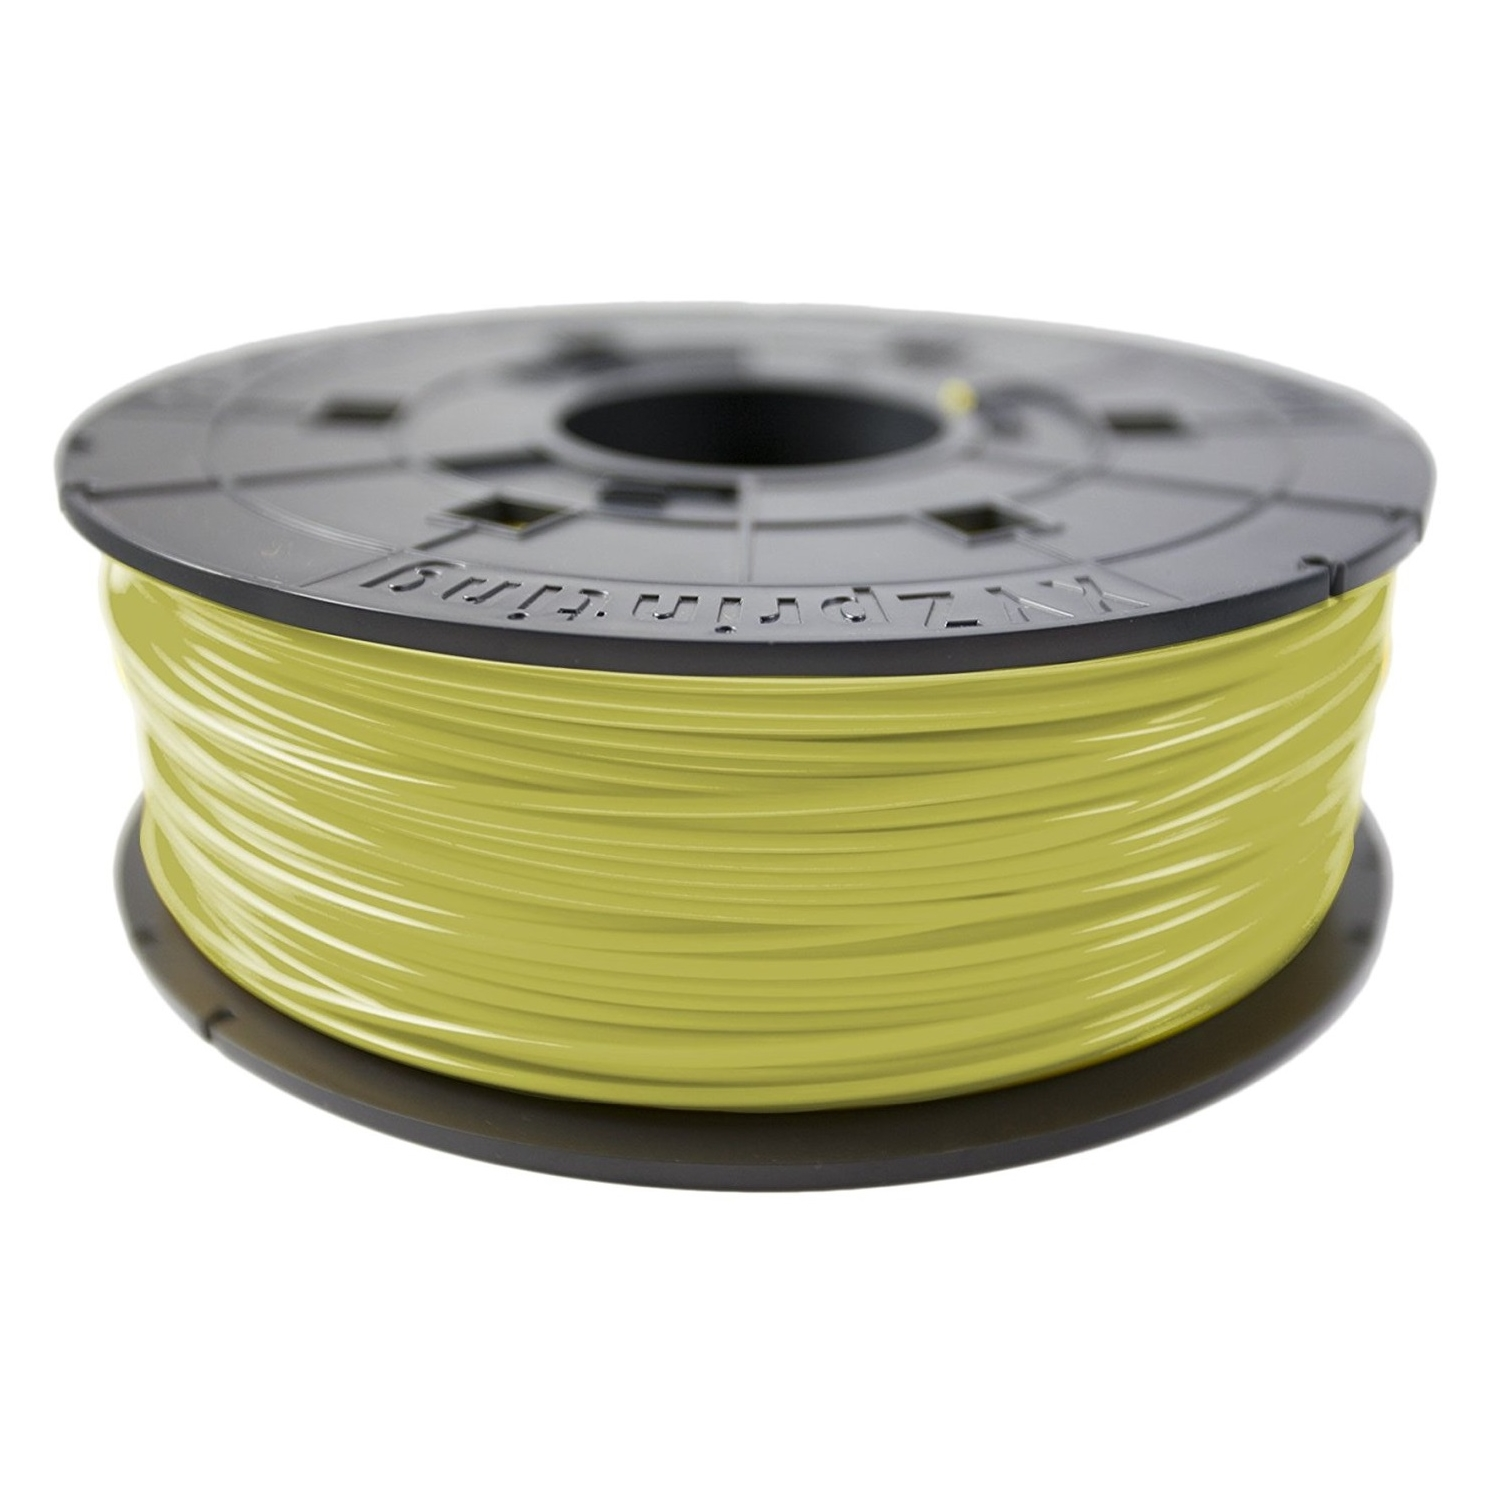 Original XYZprinting Cyber Yellow 1.75mm ABS Refill 3D Filament Cartridge (RF10XXEUZXB)